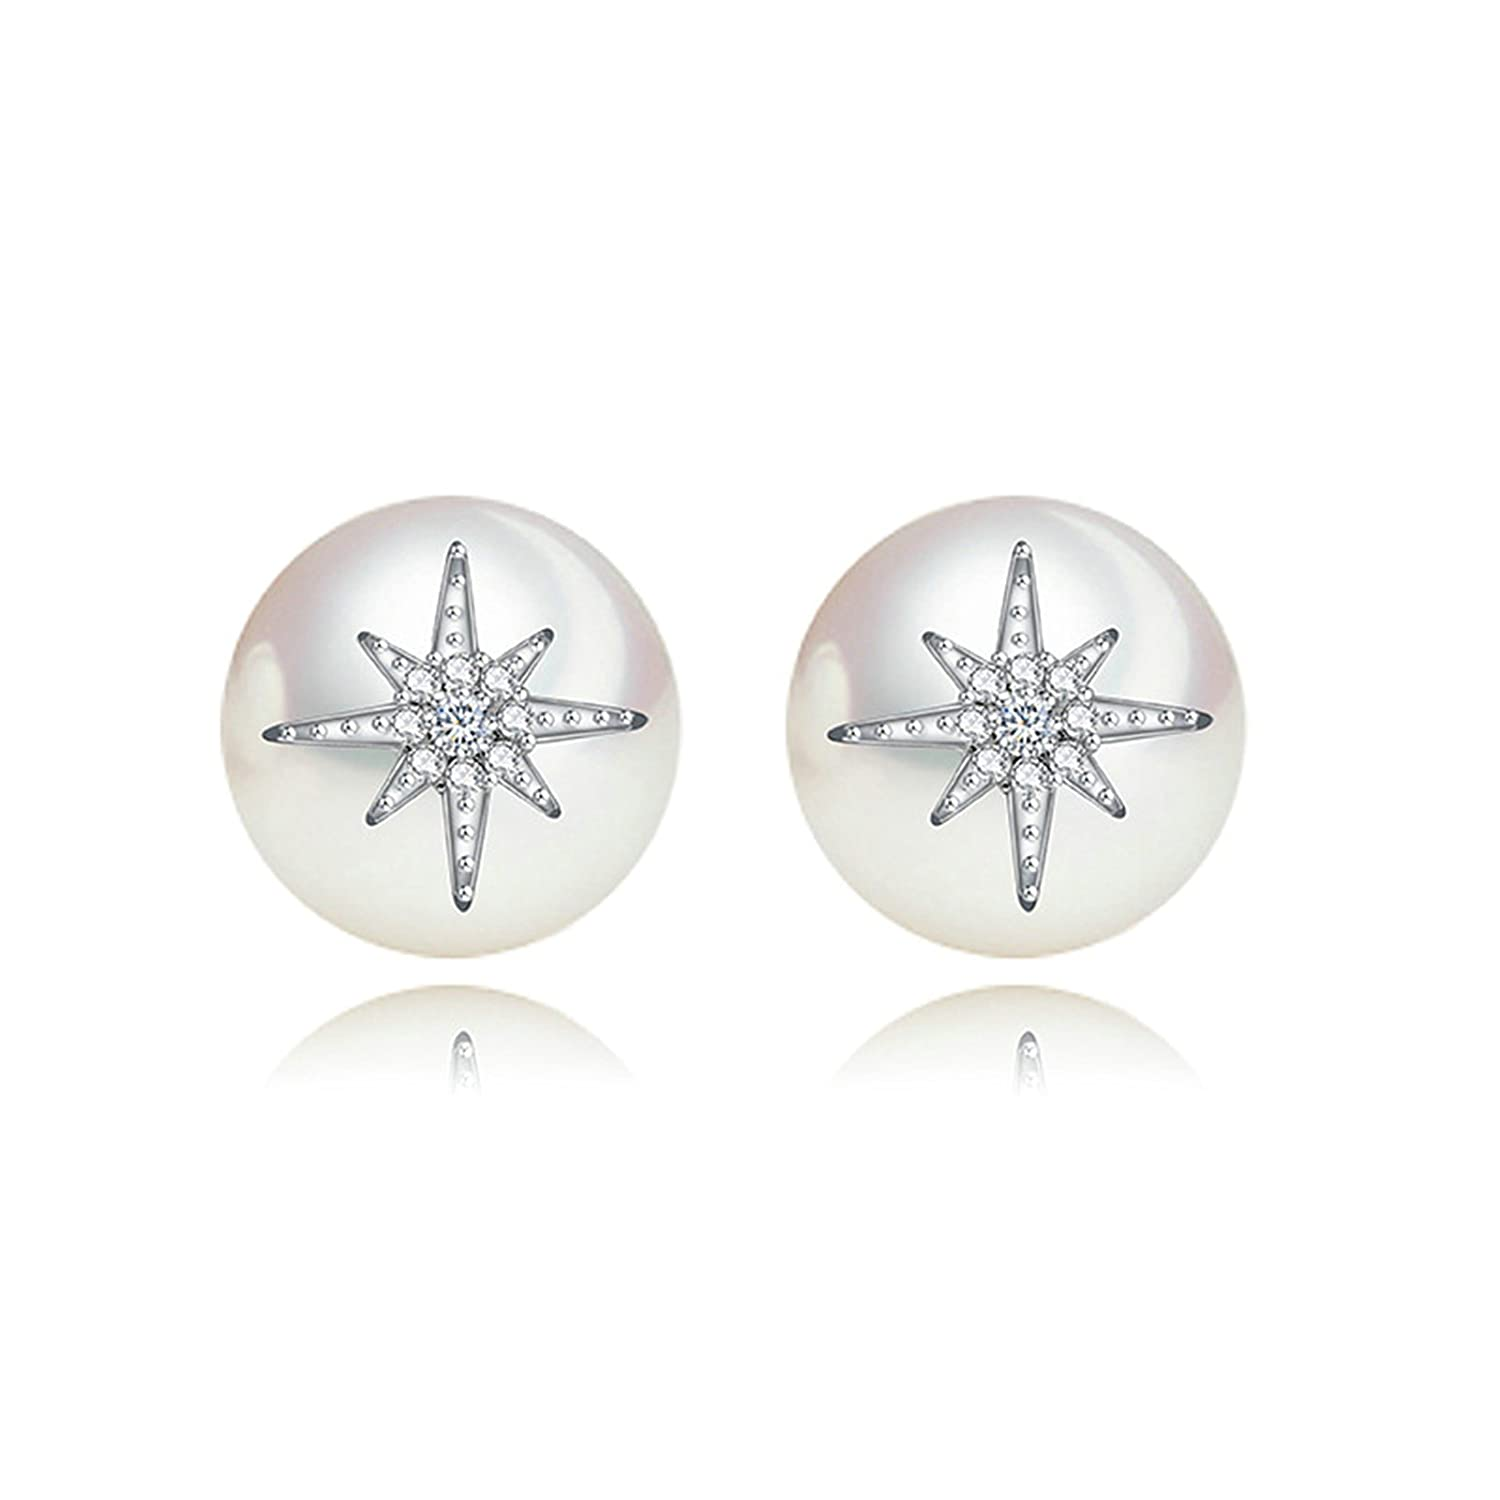 Gnzoe Jewelry Women White Gold Plated Piercing Stud Earrings White Cubic Zirconia Unique Round Pearl 9.5x9.5MM